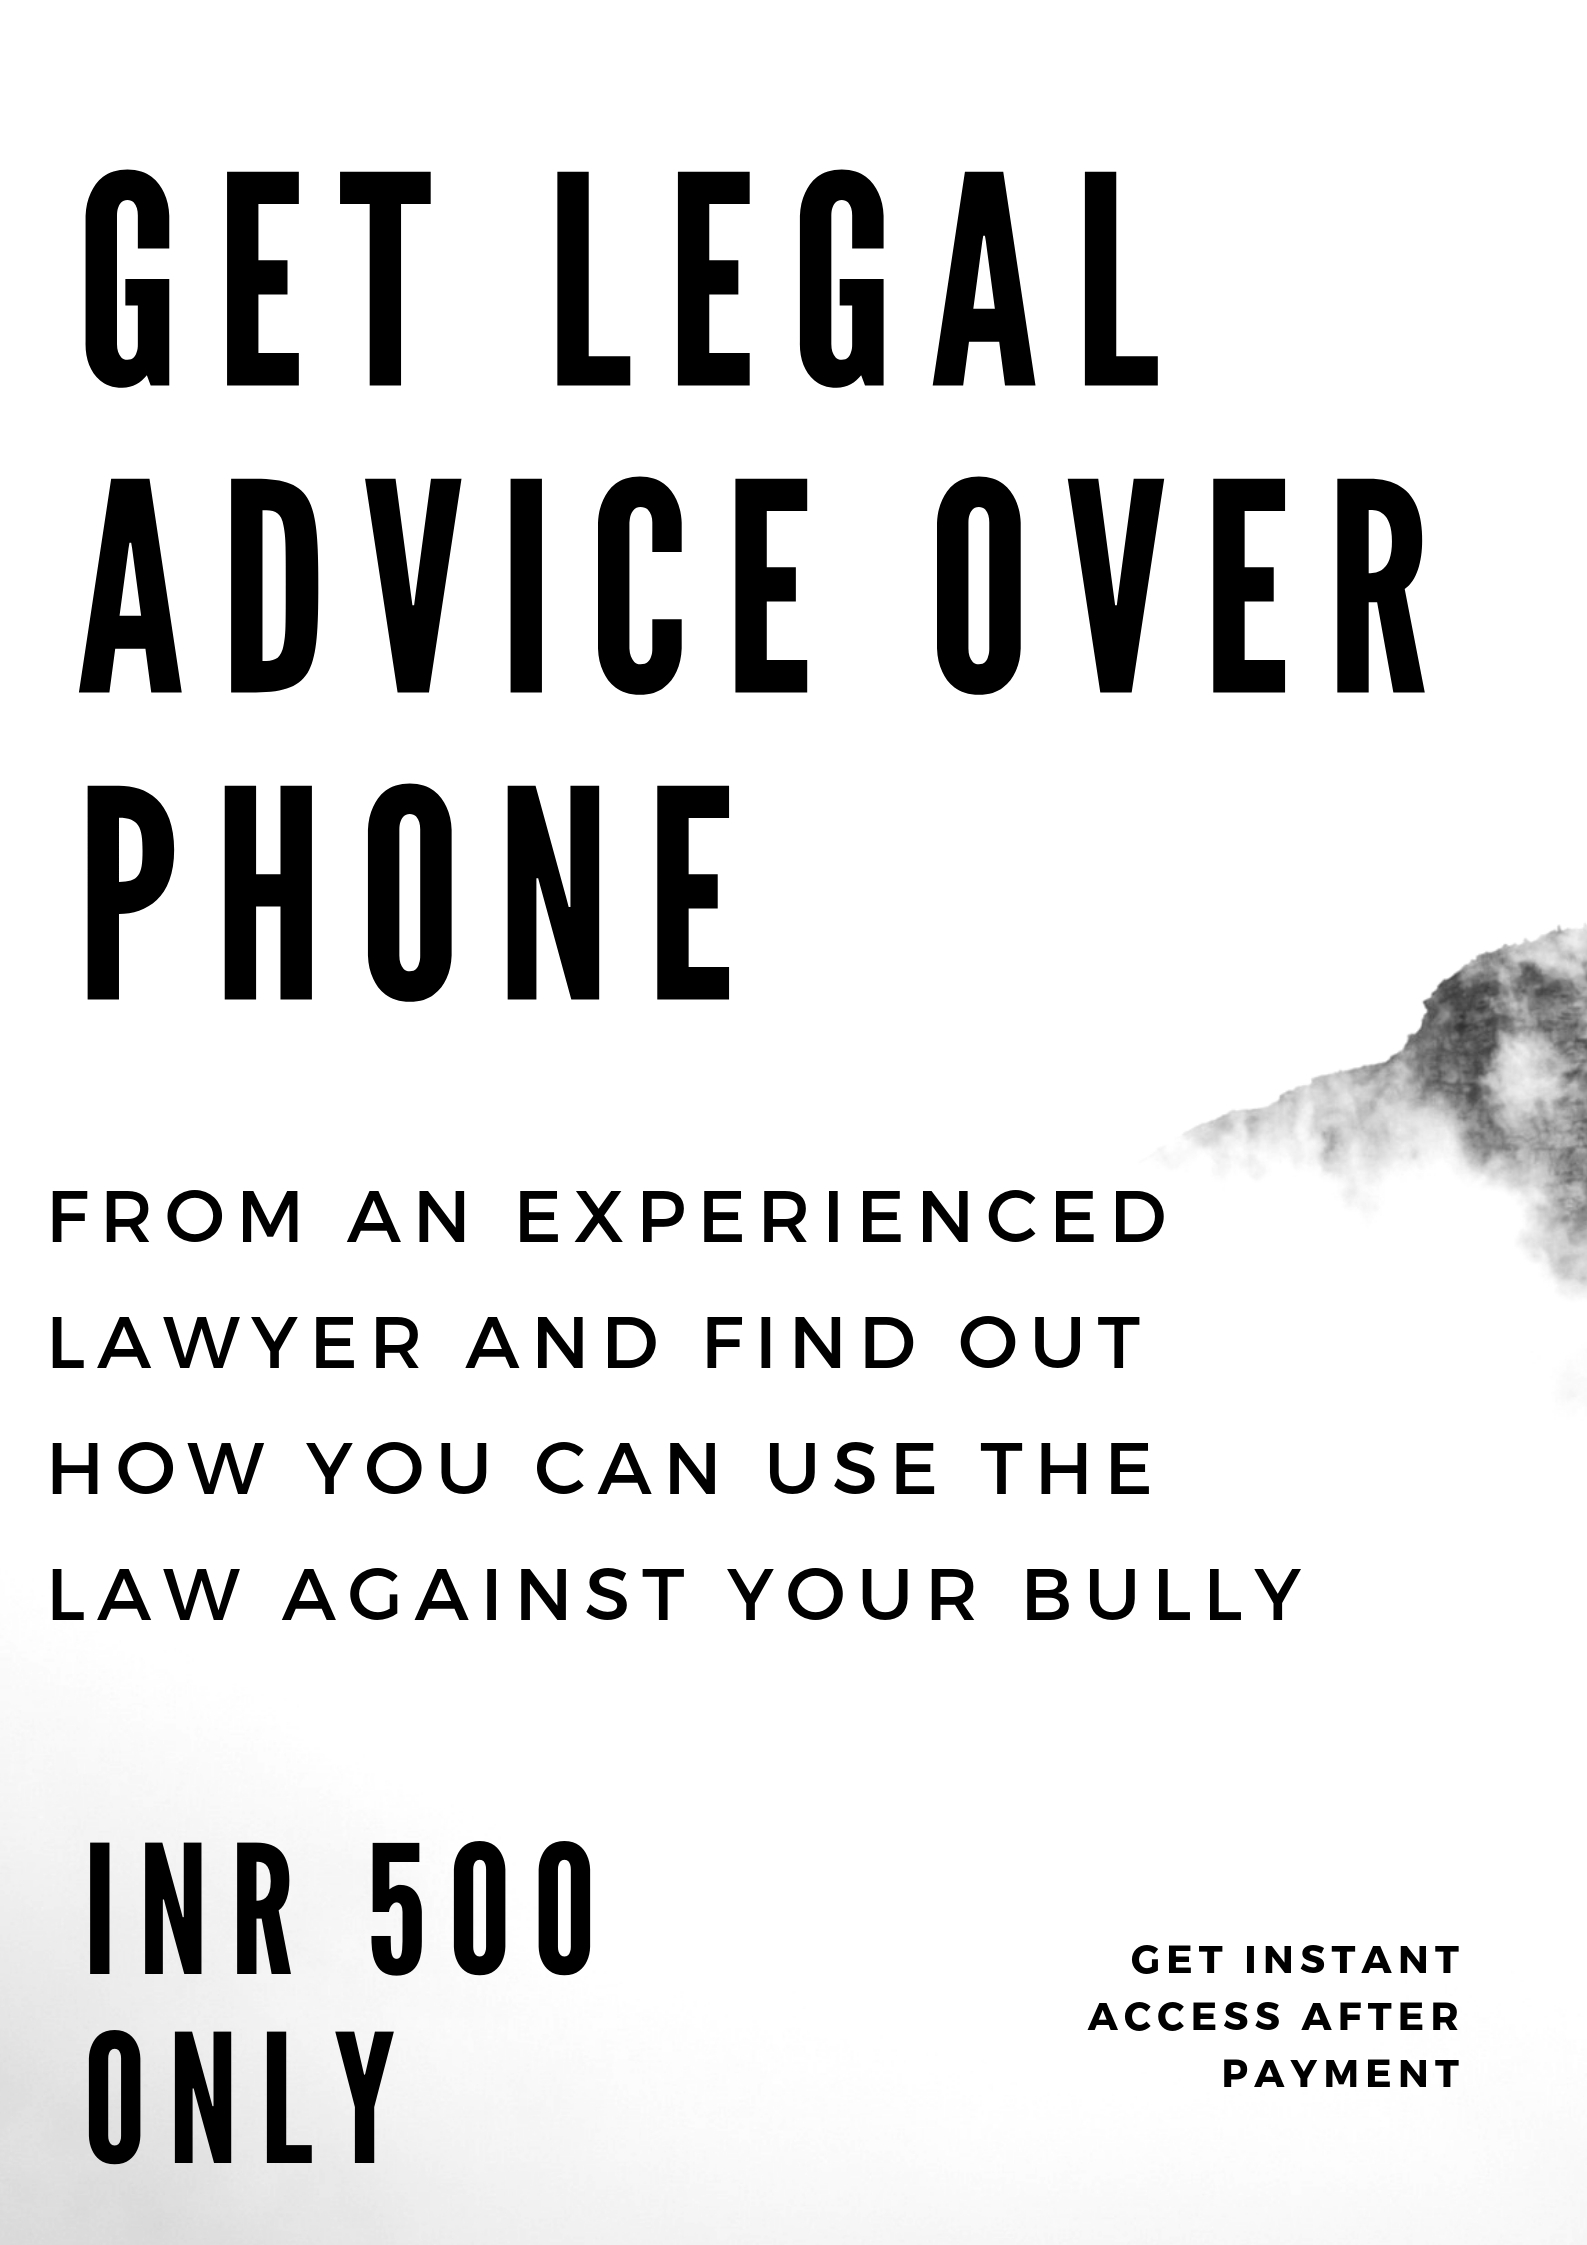 click here to get legal advice